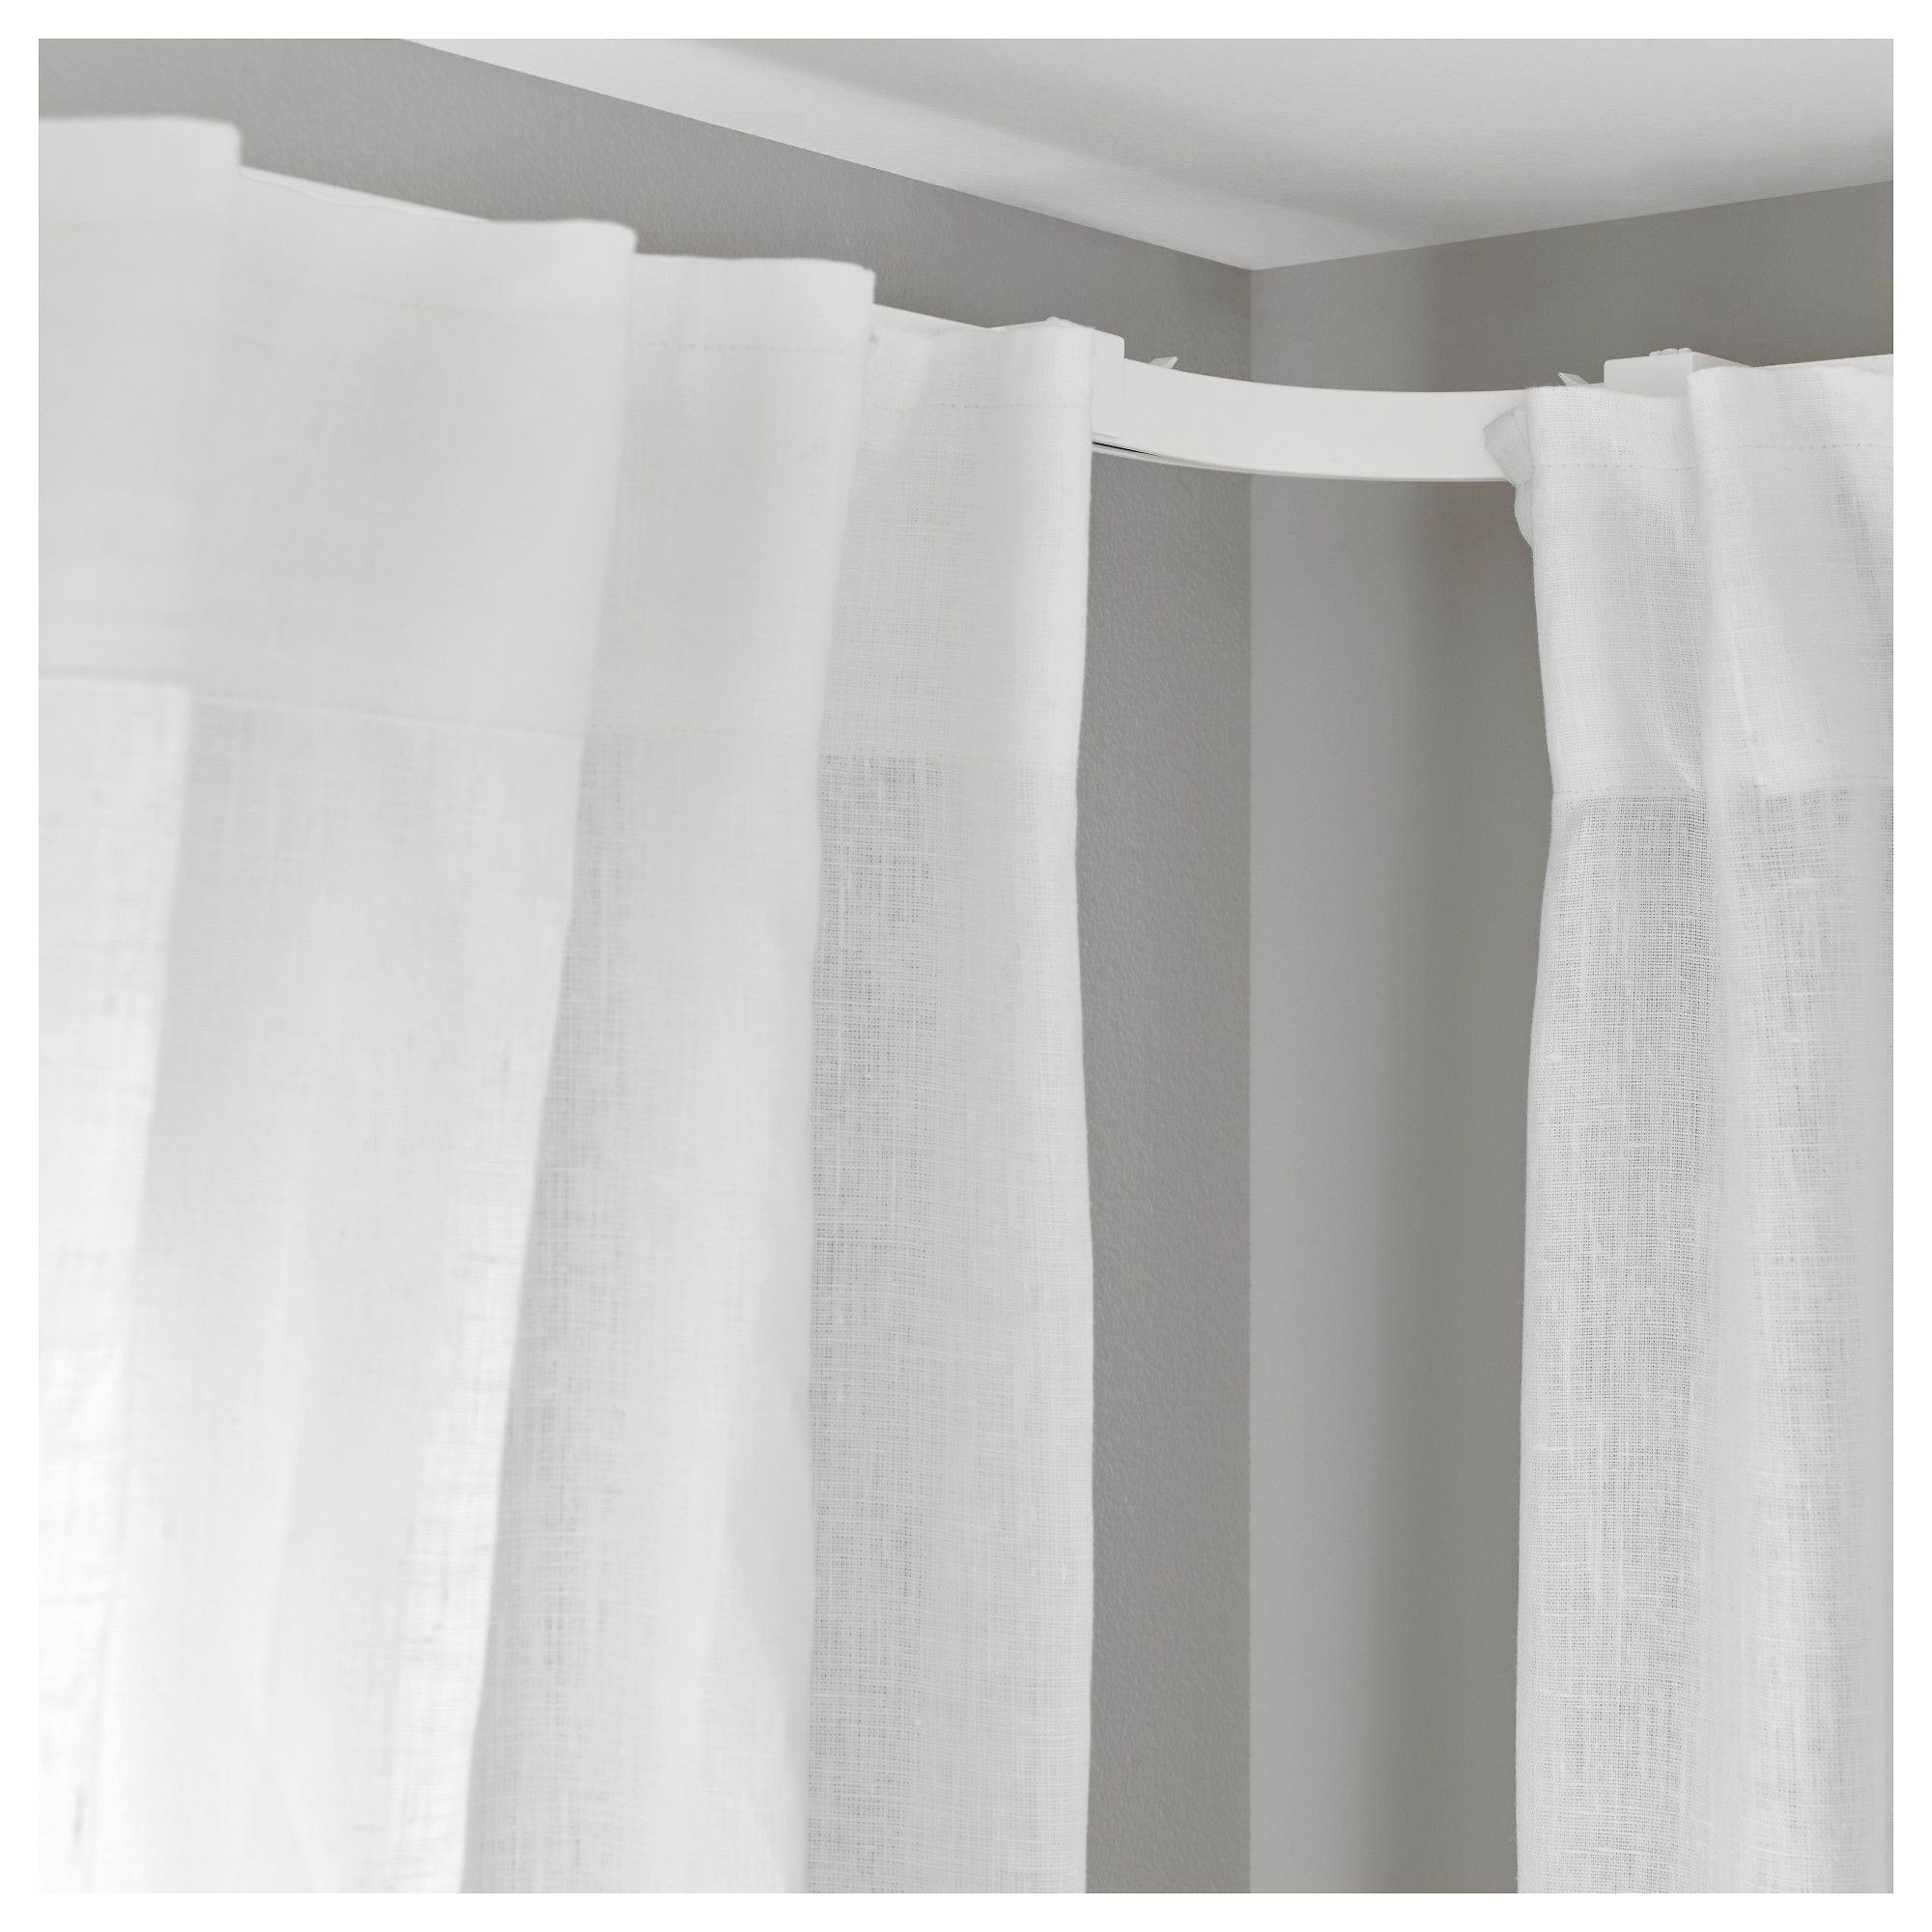 Ikea Vidga Corner Piece Single Track White Curtains